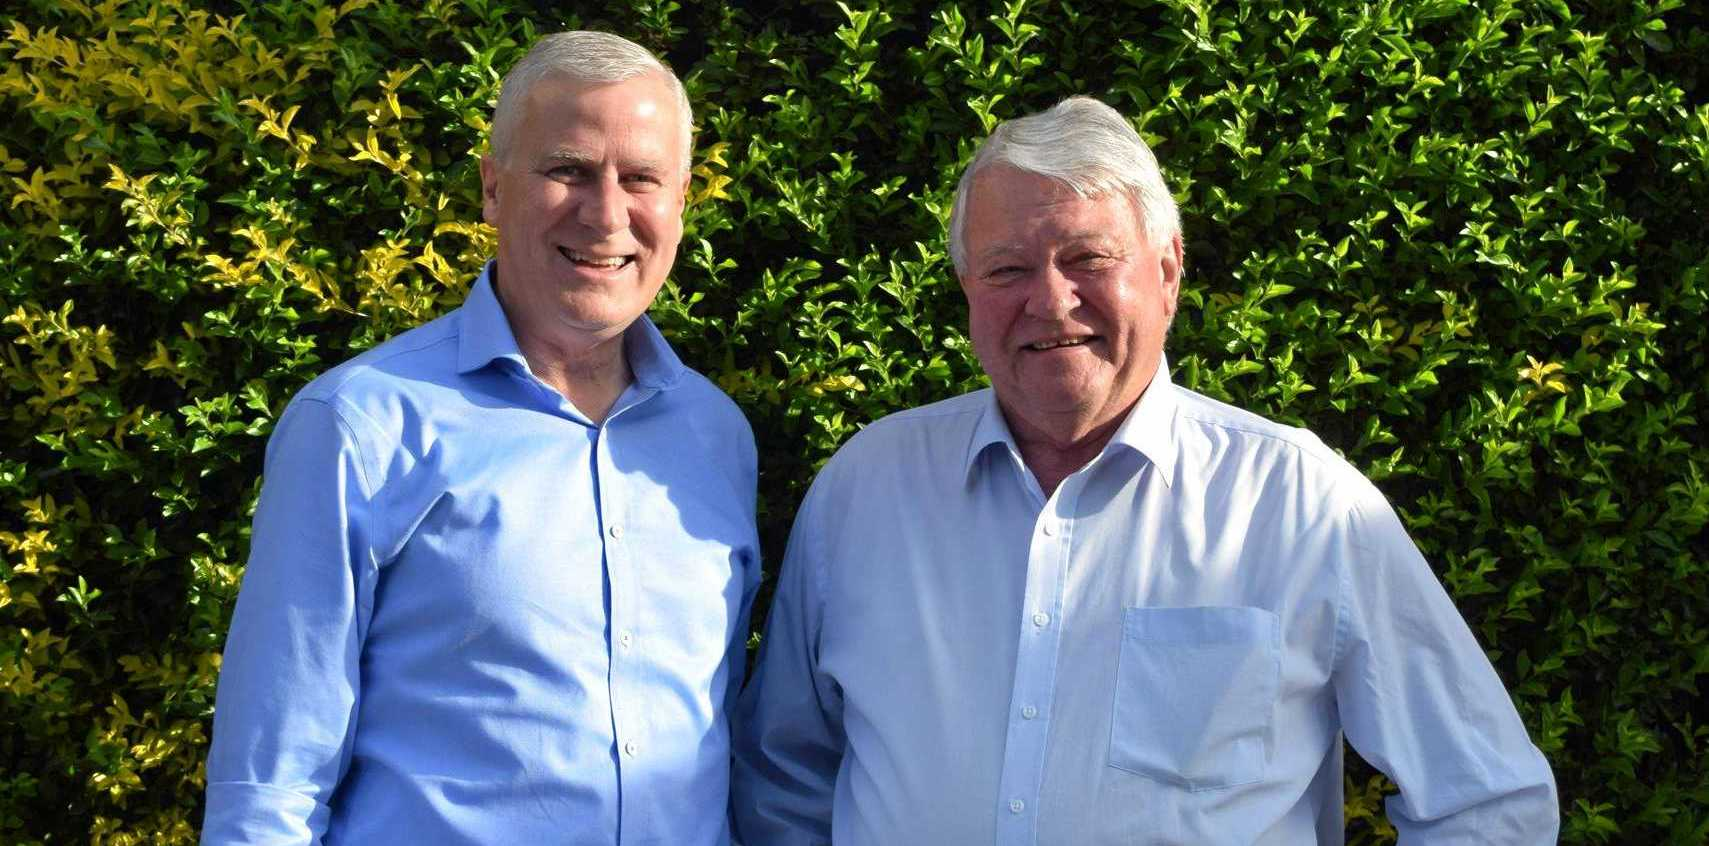 Acting Prime Minister Michael McCormack and Member for Flynn Ken O'Dowd.